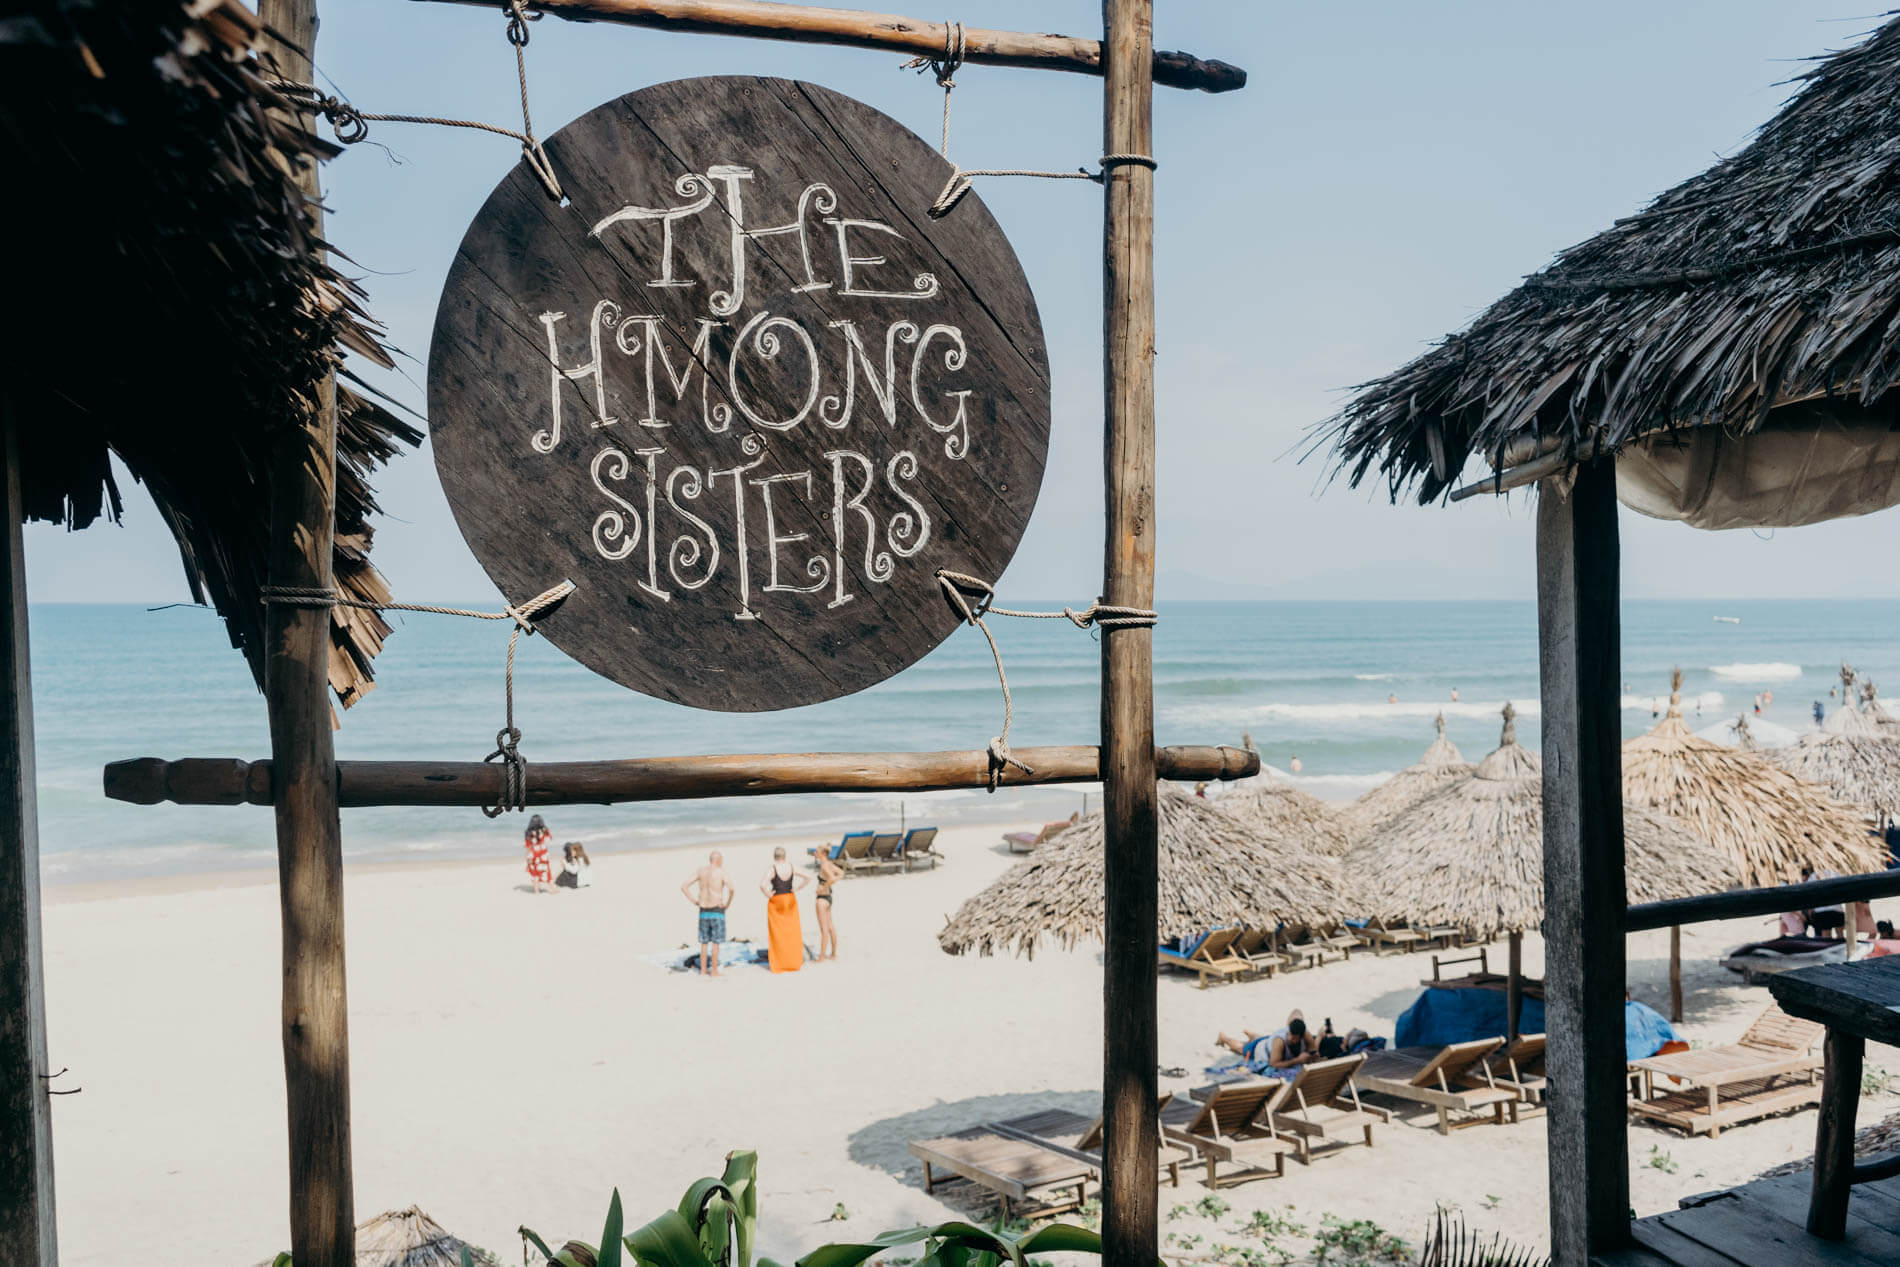 The H'mong Sisters is one of the best beach restaurants in Hoi An